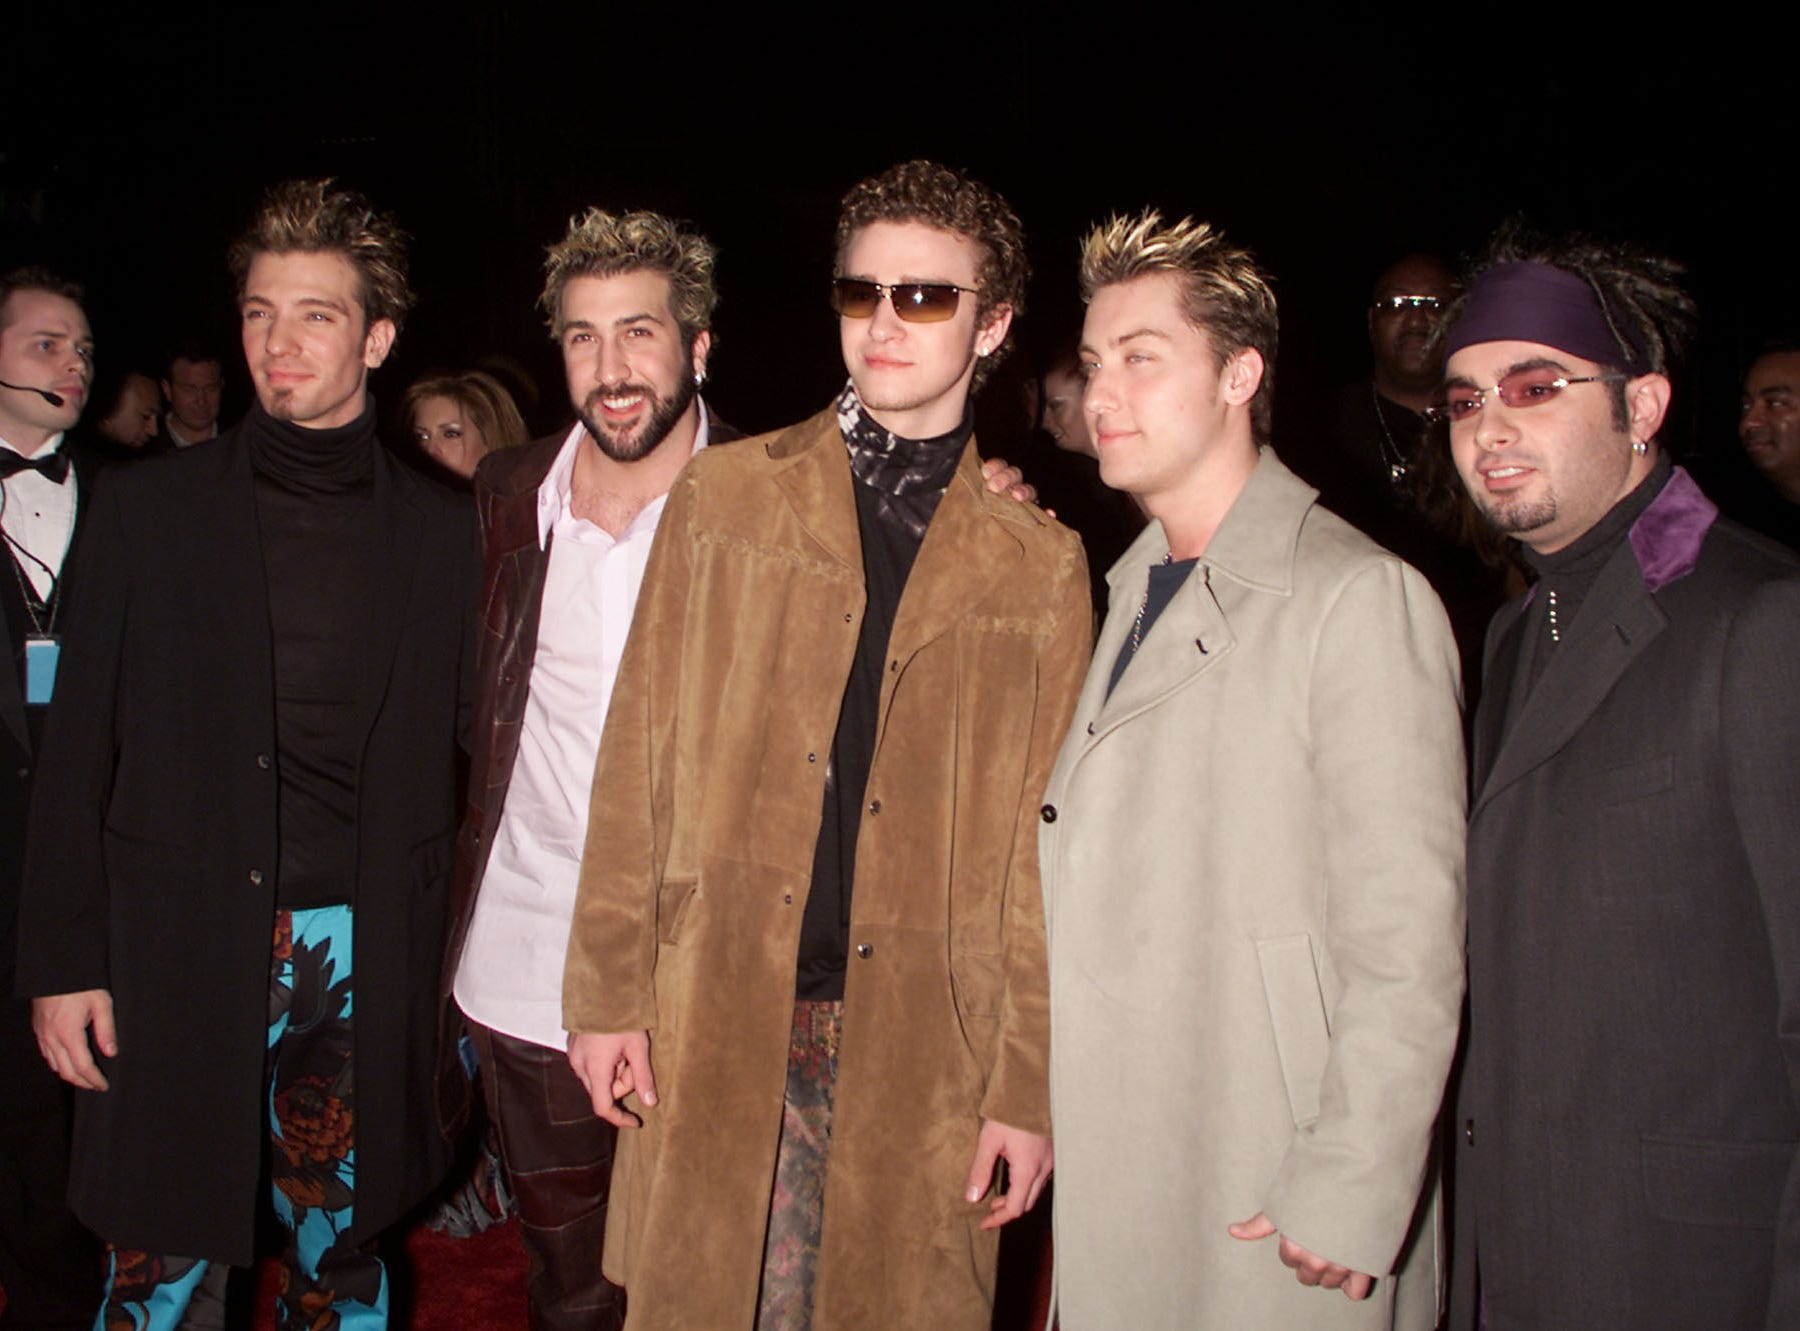 N'SYNC arrives at the 27th Annual People's Choice Awards at the Pasadena Civic Auditorium in Pasadena, California, Sunday January 7, 2001. Photo by Kevin Winter/ImageDirect